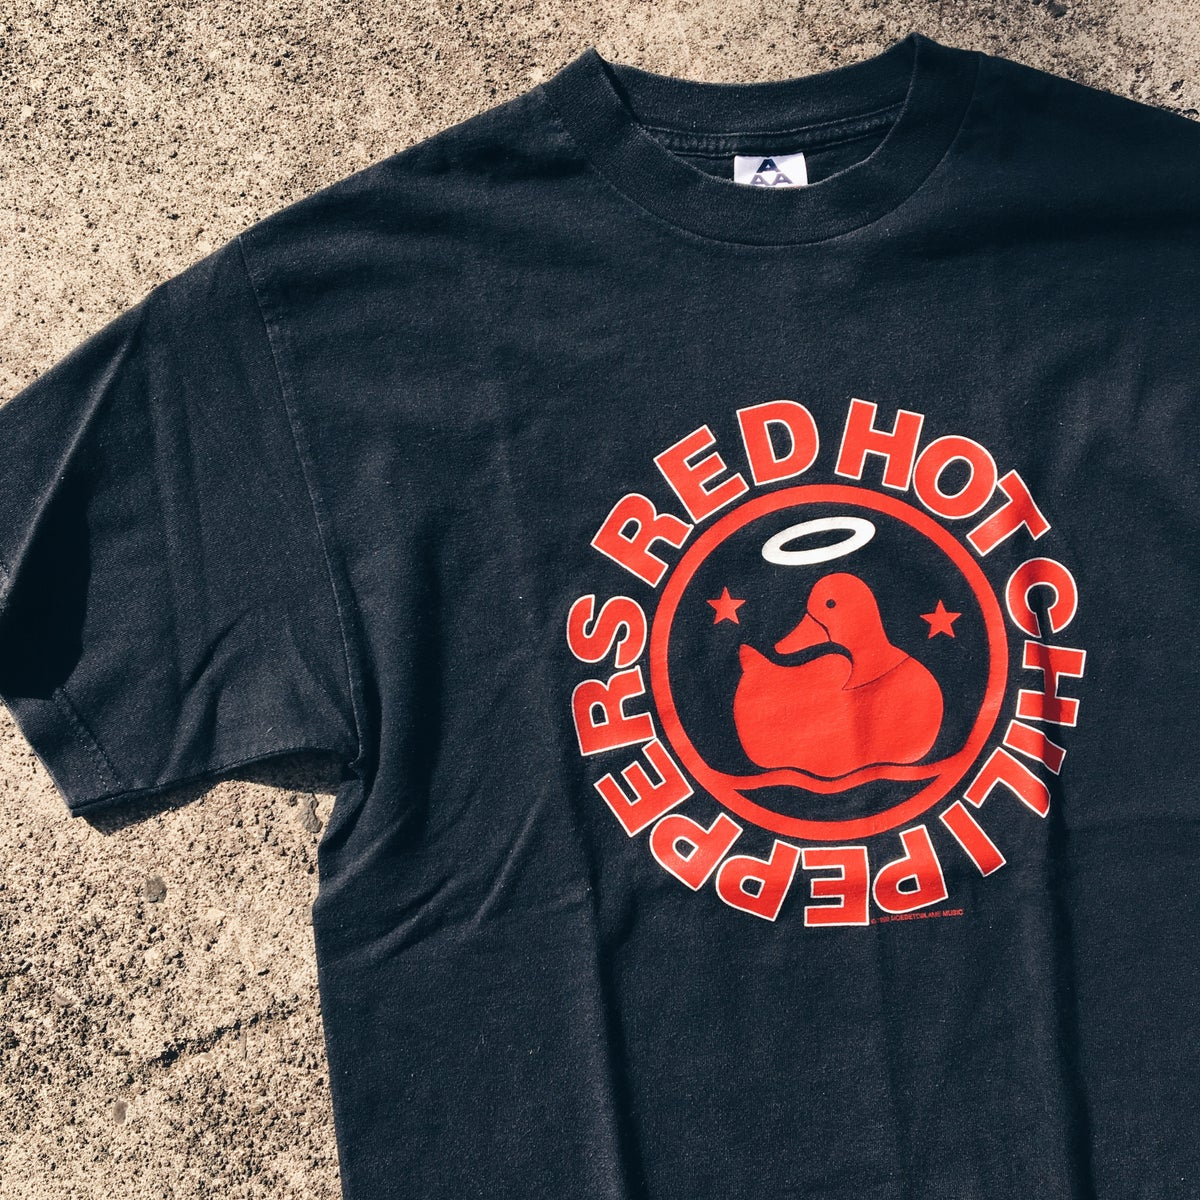 Image of Original 1998 Red Hot Chili Peppers Californication Tee.